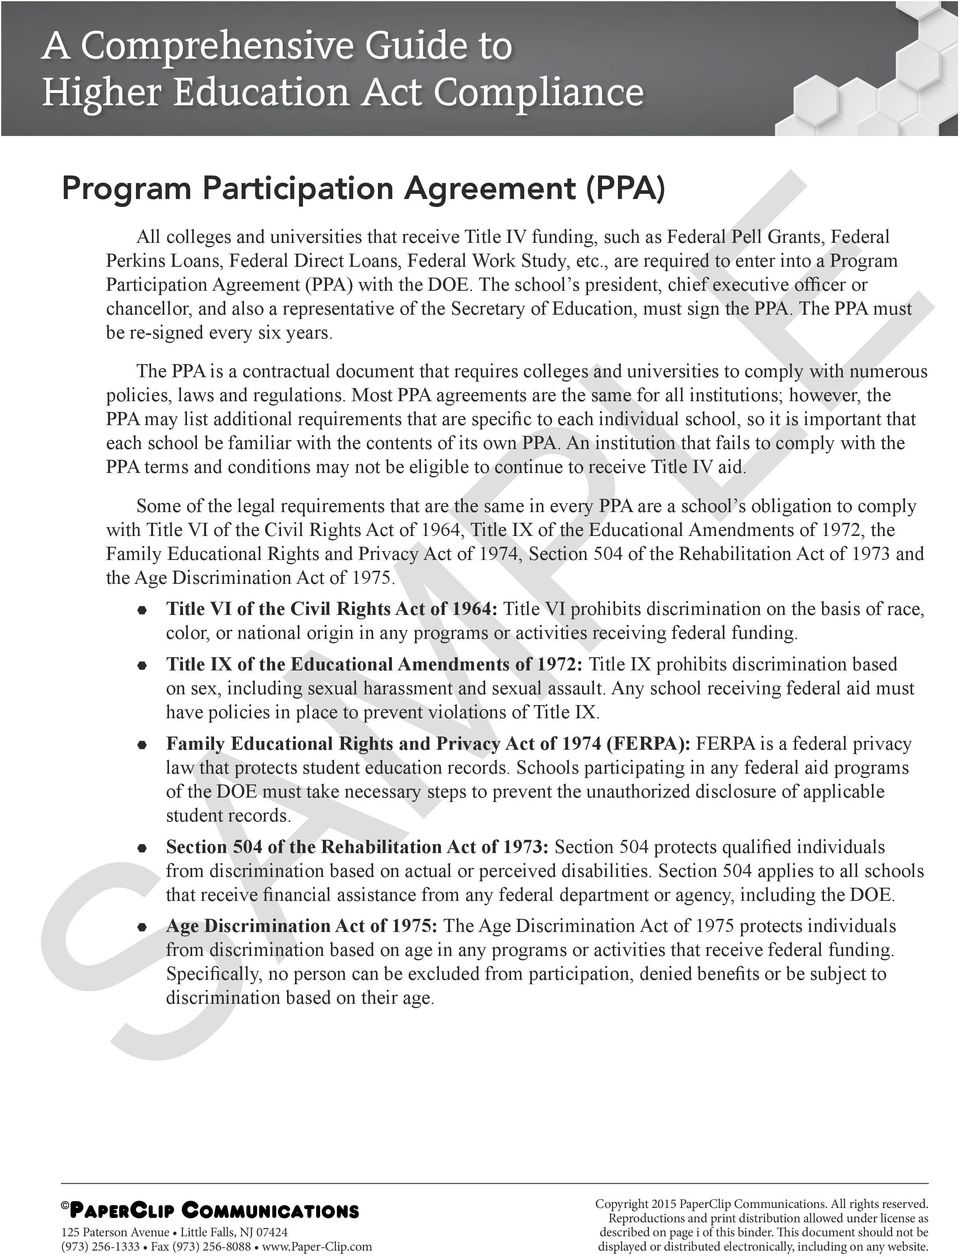 The school s president, chief executive officer or chancellor, and also a representative of the Secretary of Education, must sign the PPA. The PPA must be re-signed every six years.